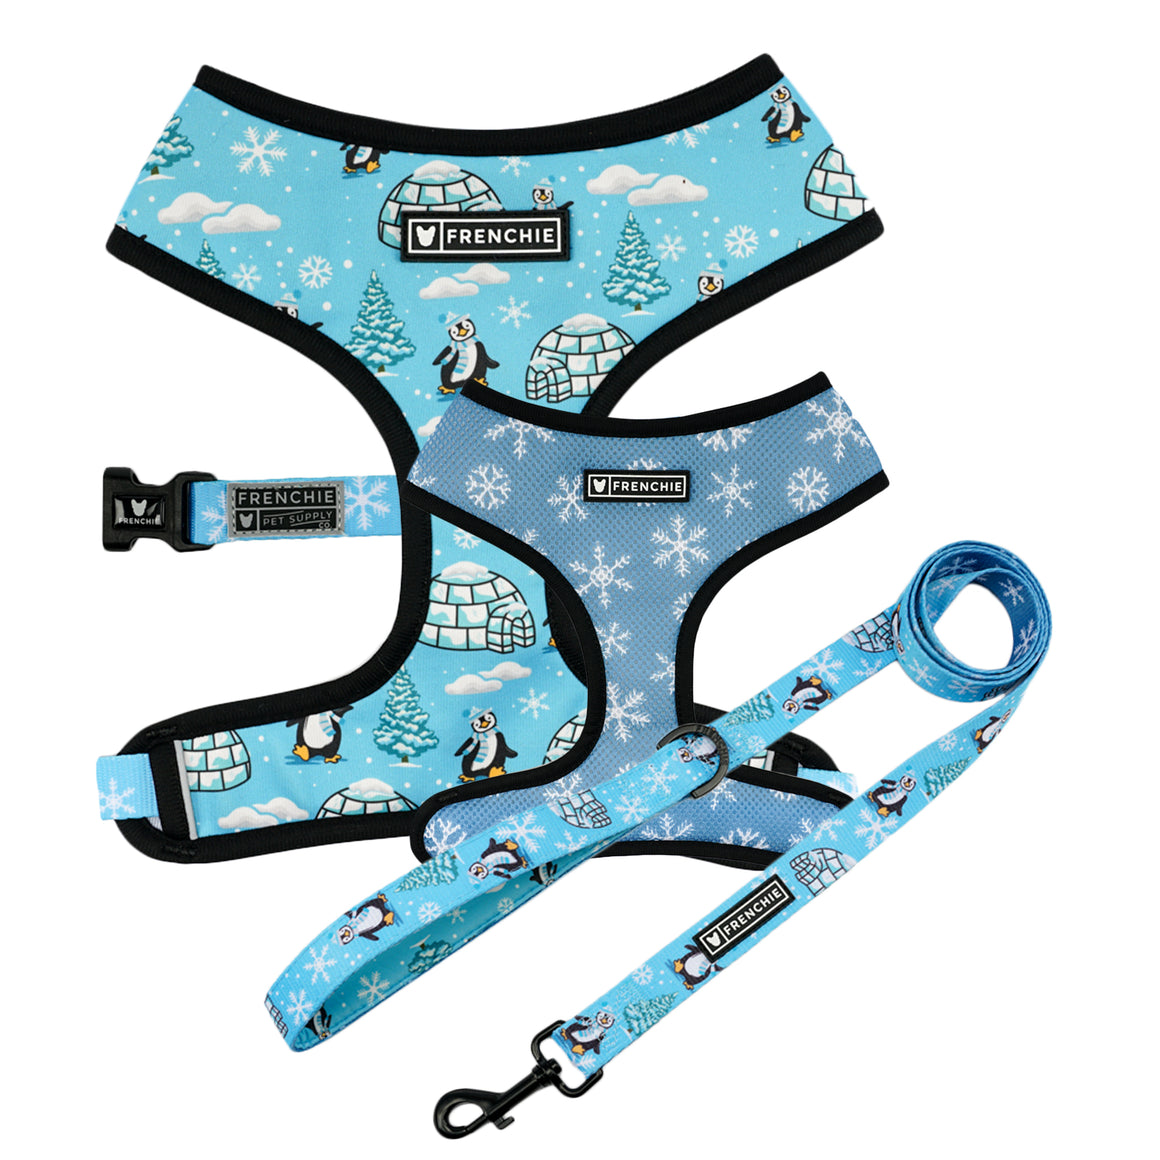 Matching Set- Frenchie Duo Reversible Harness and Comfort Leash- Blue Let It Snow - Frenchie Bulldog - Shop Harnesses for French Bulldogs - Shop French Bulldog Harness - Harnesses for Pugs